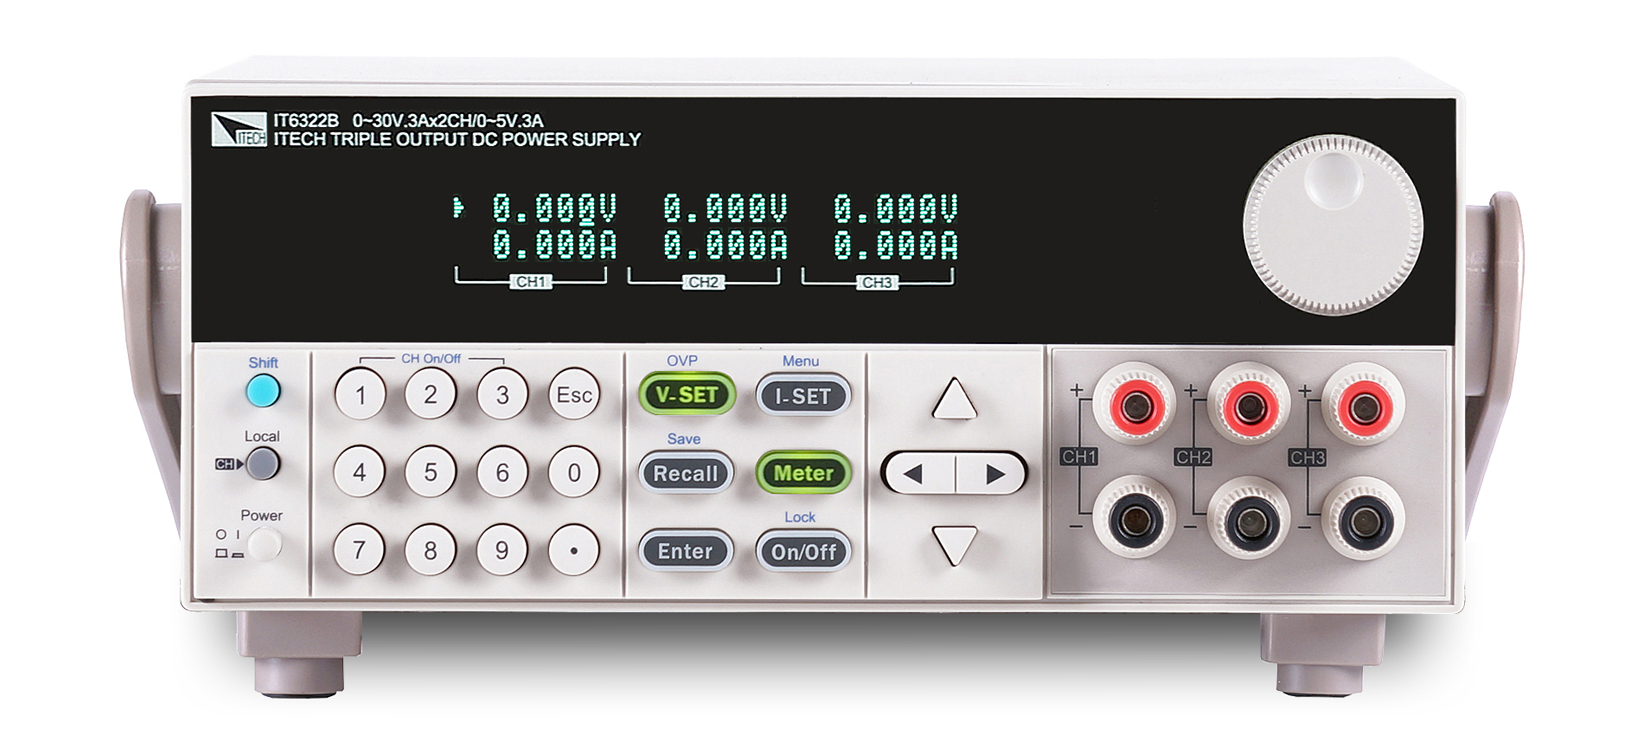 The Itech IT6300 series DC Power Supplies